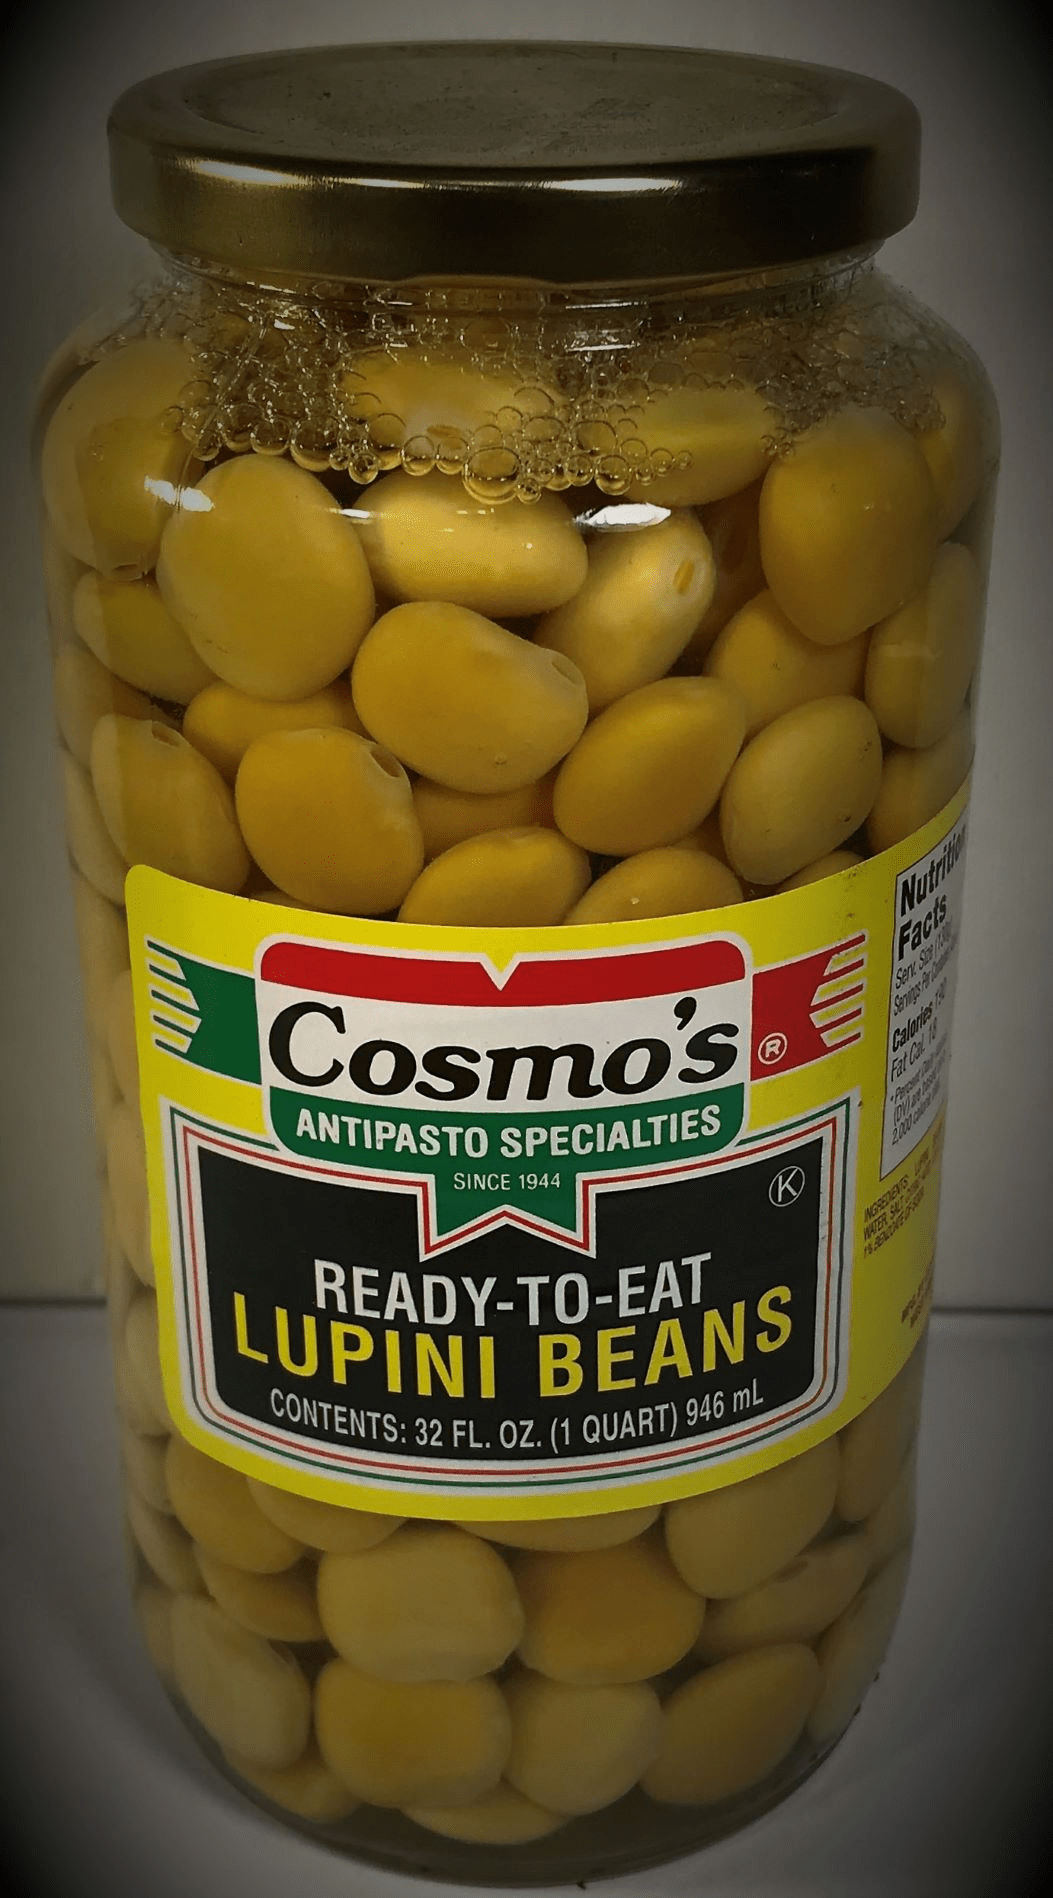 Cosmo's Ready to eat Lupini Beans - 32 FL. OZ.